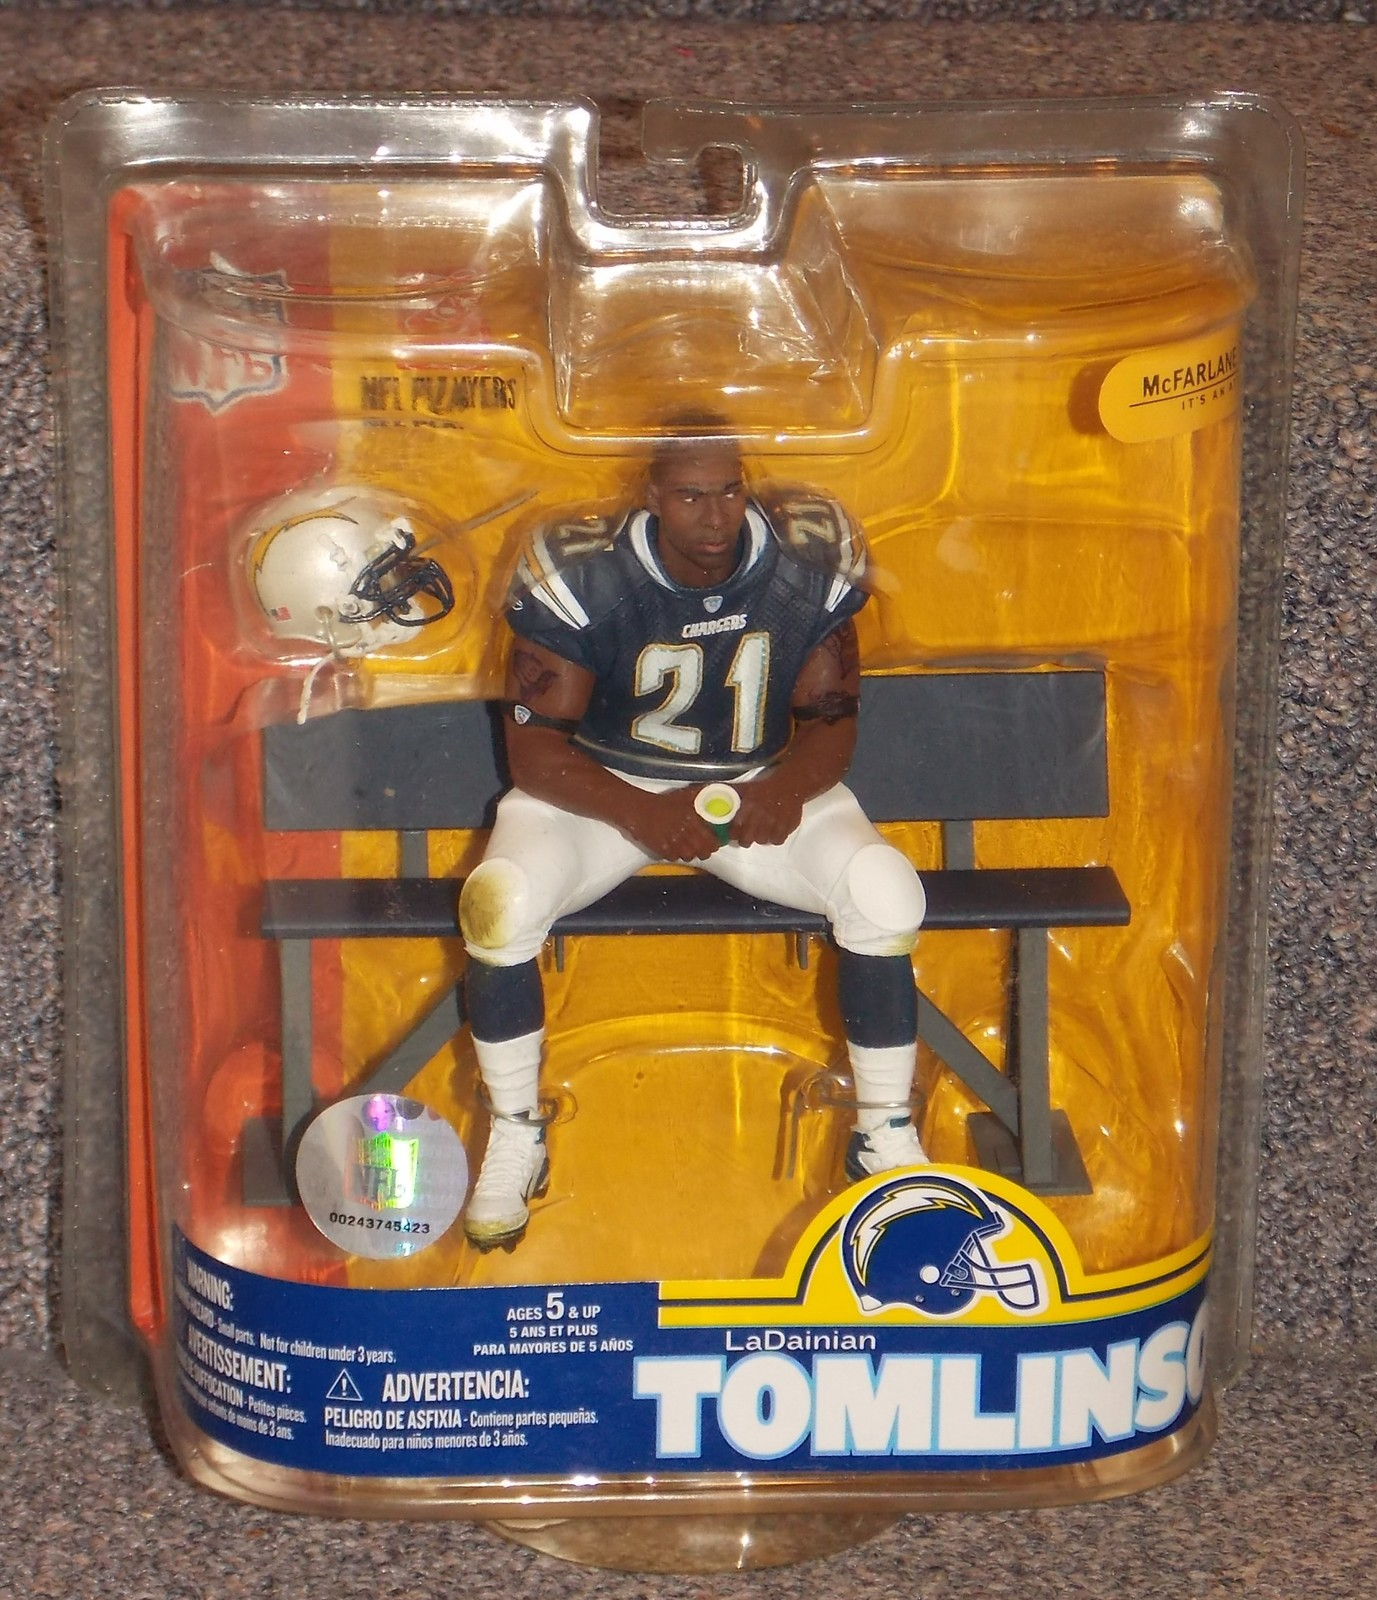 2007 McFarlane  NFL LaDainian Tomlinson San Diego Chargers Figure New In Package